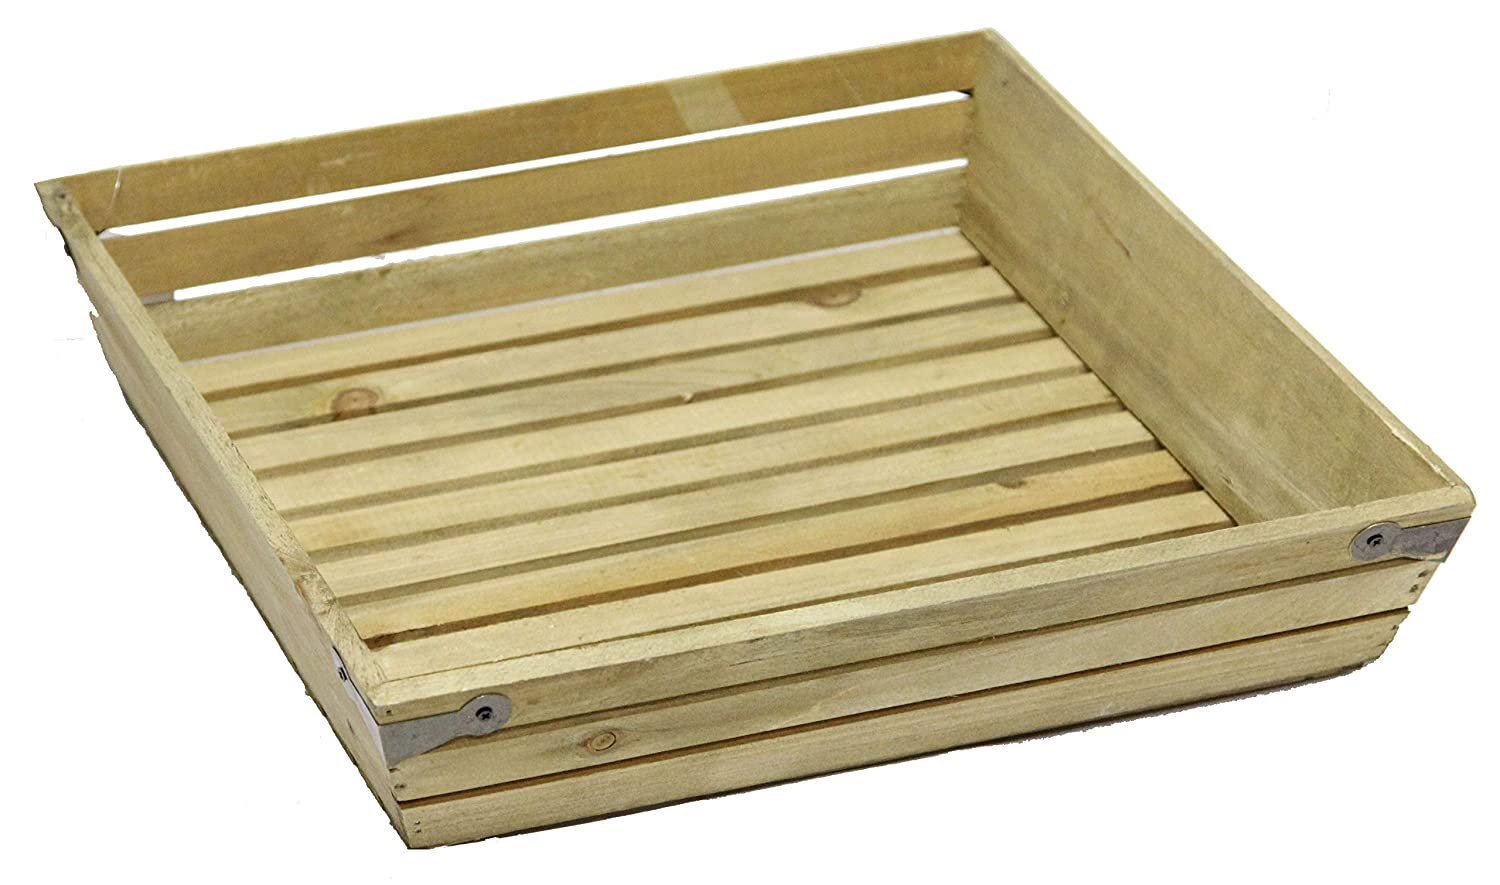 13.5x13.5\ Admired By Nature ABN5E020-NTRL Natural Wood Large Shallow Square Crate with Metal Corner Design, 13.5x13.5